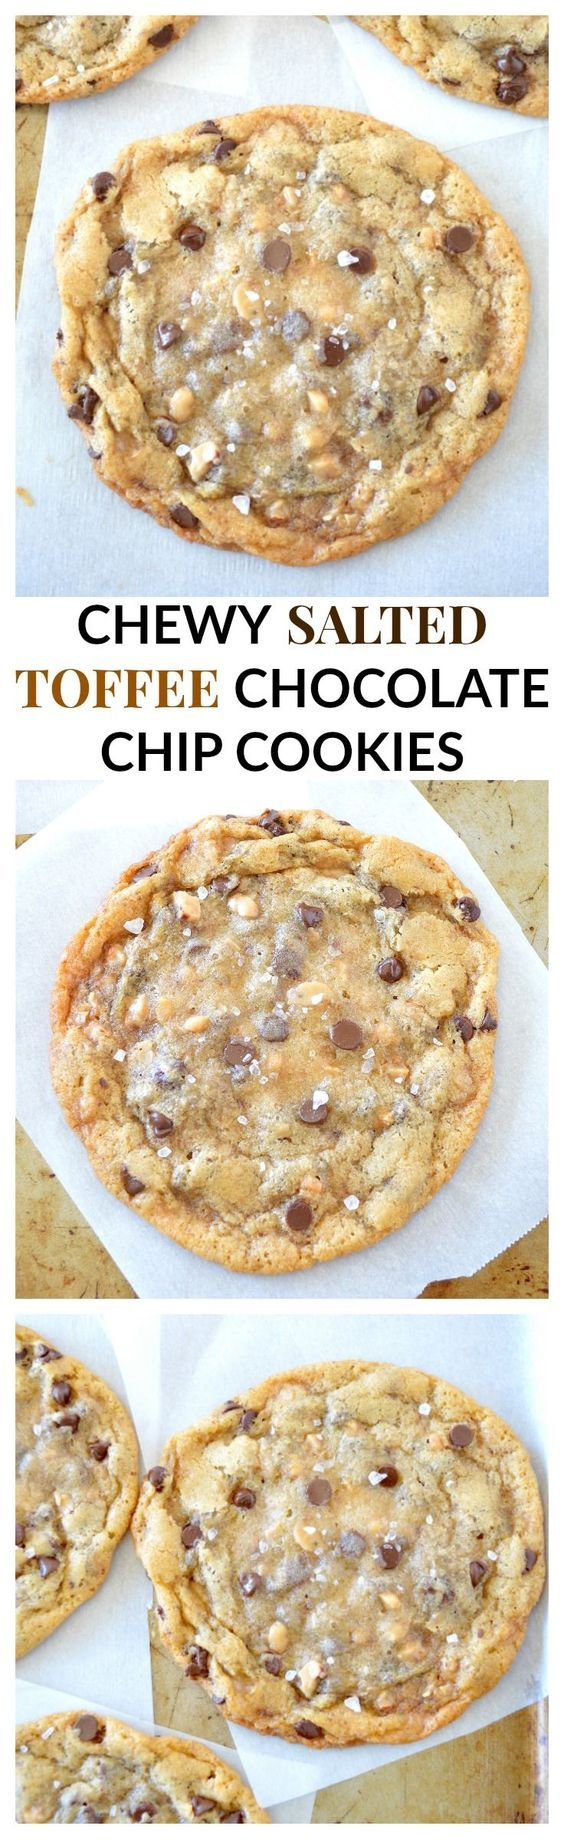 how to make chewy toffee with condensed milk